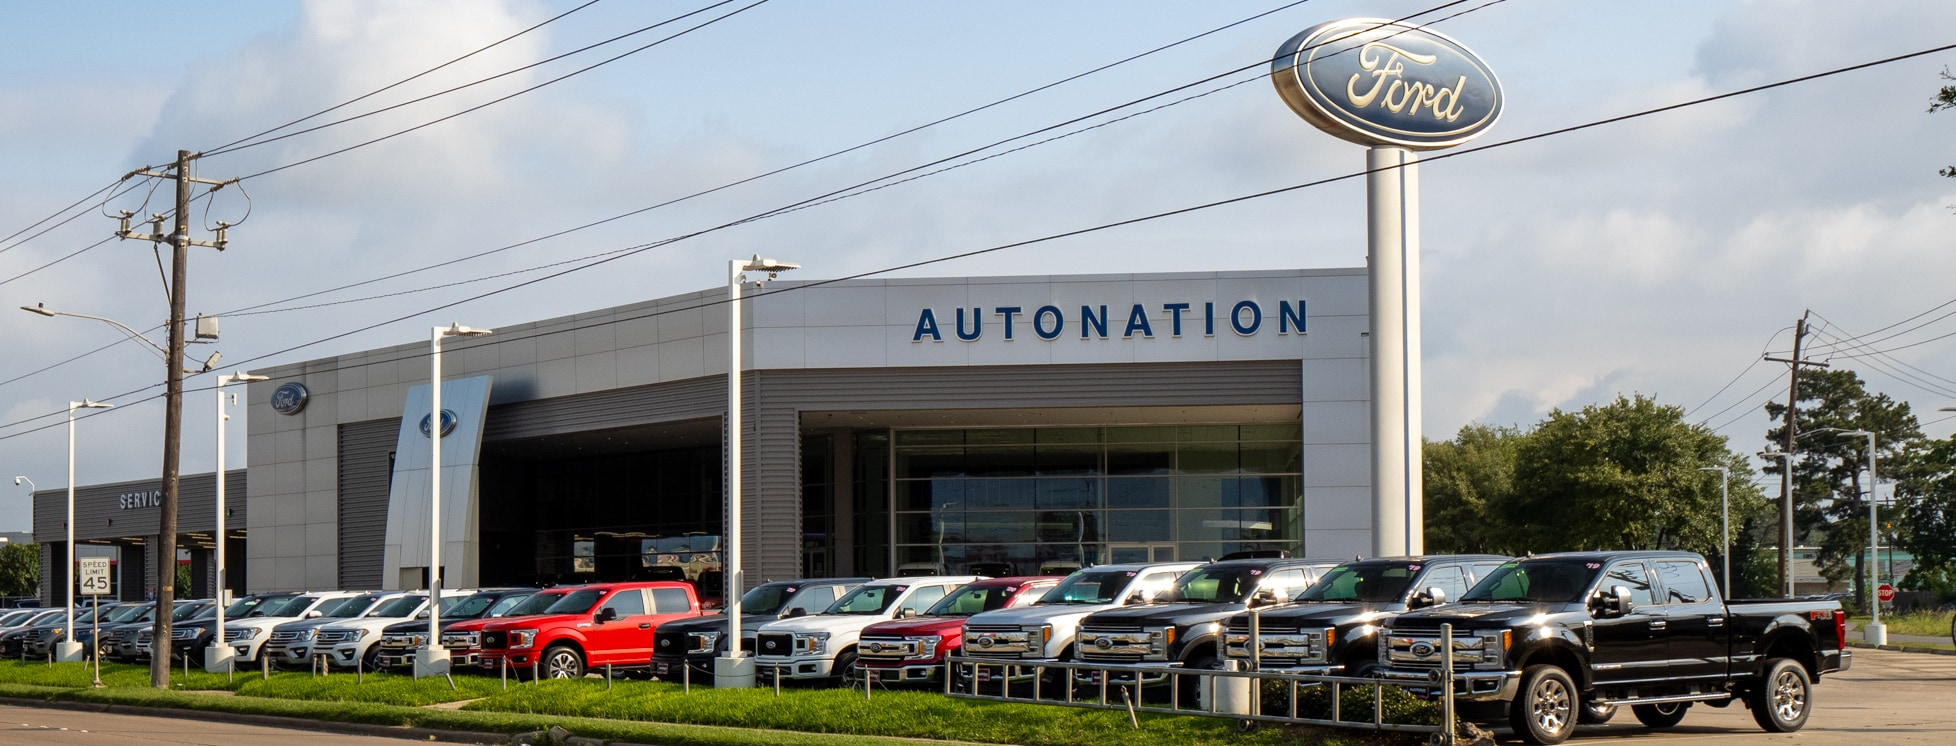 Exterior view of AutoNation Ford Gulf Freeway